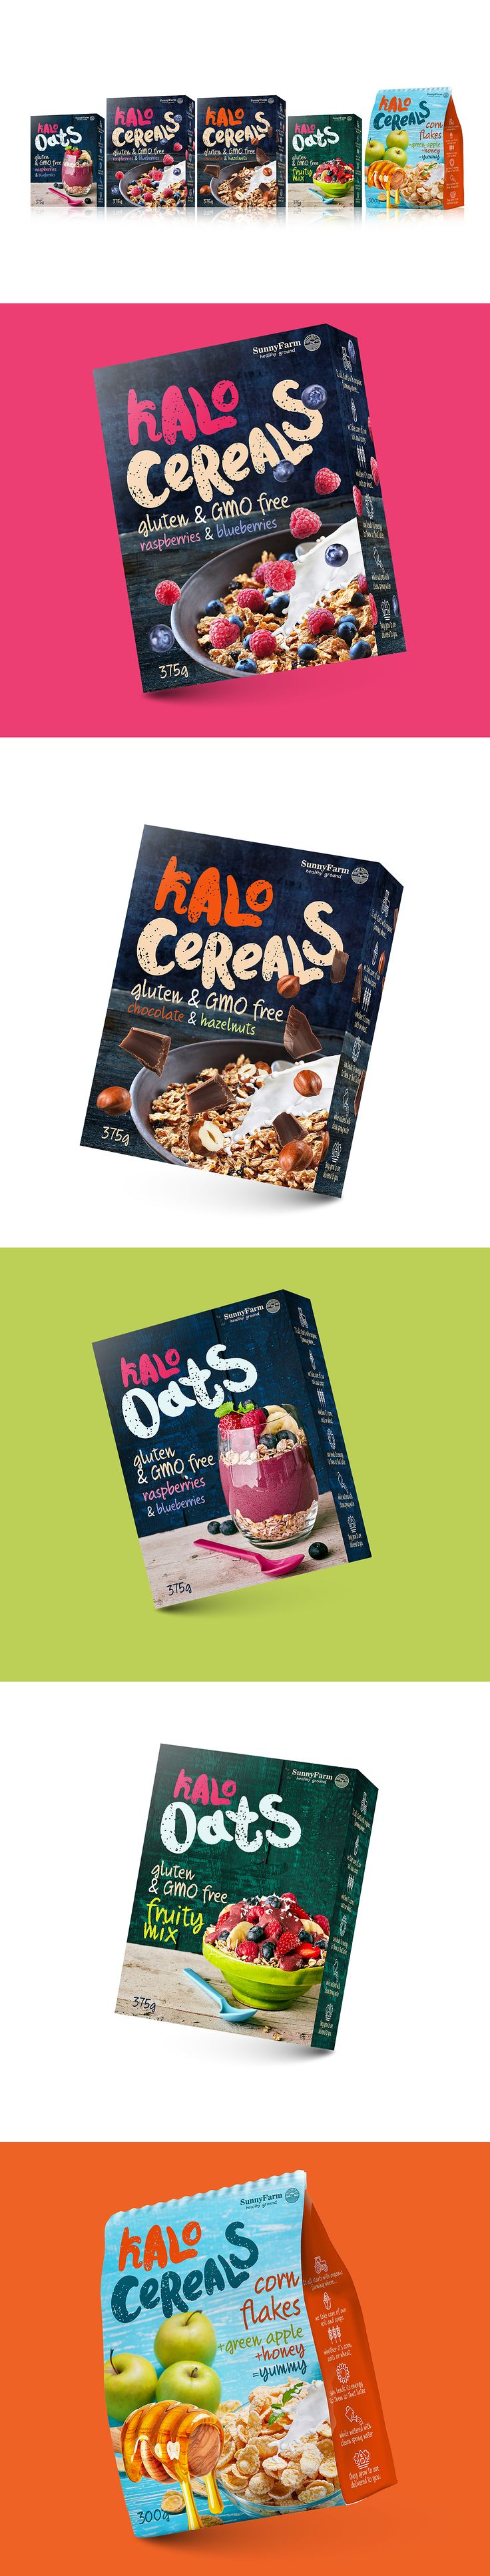 KALO OATS gluten and GMO free cereals for everyone.